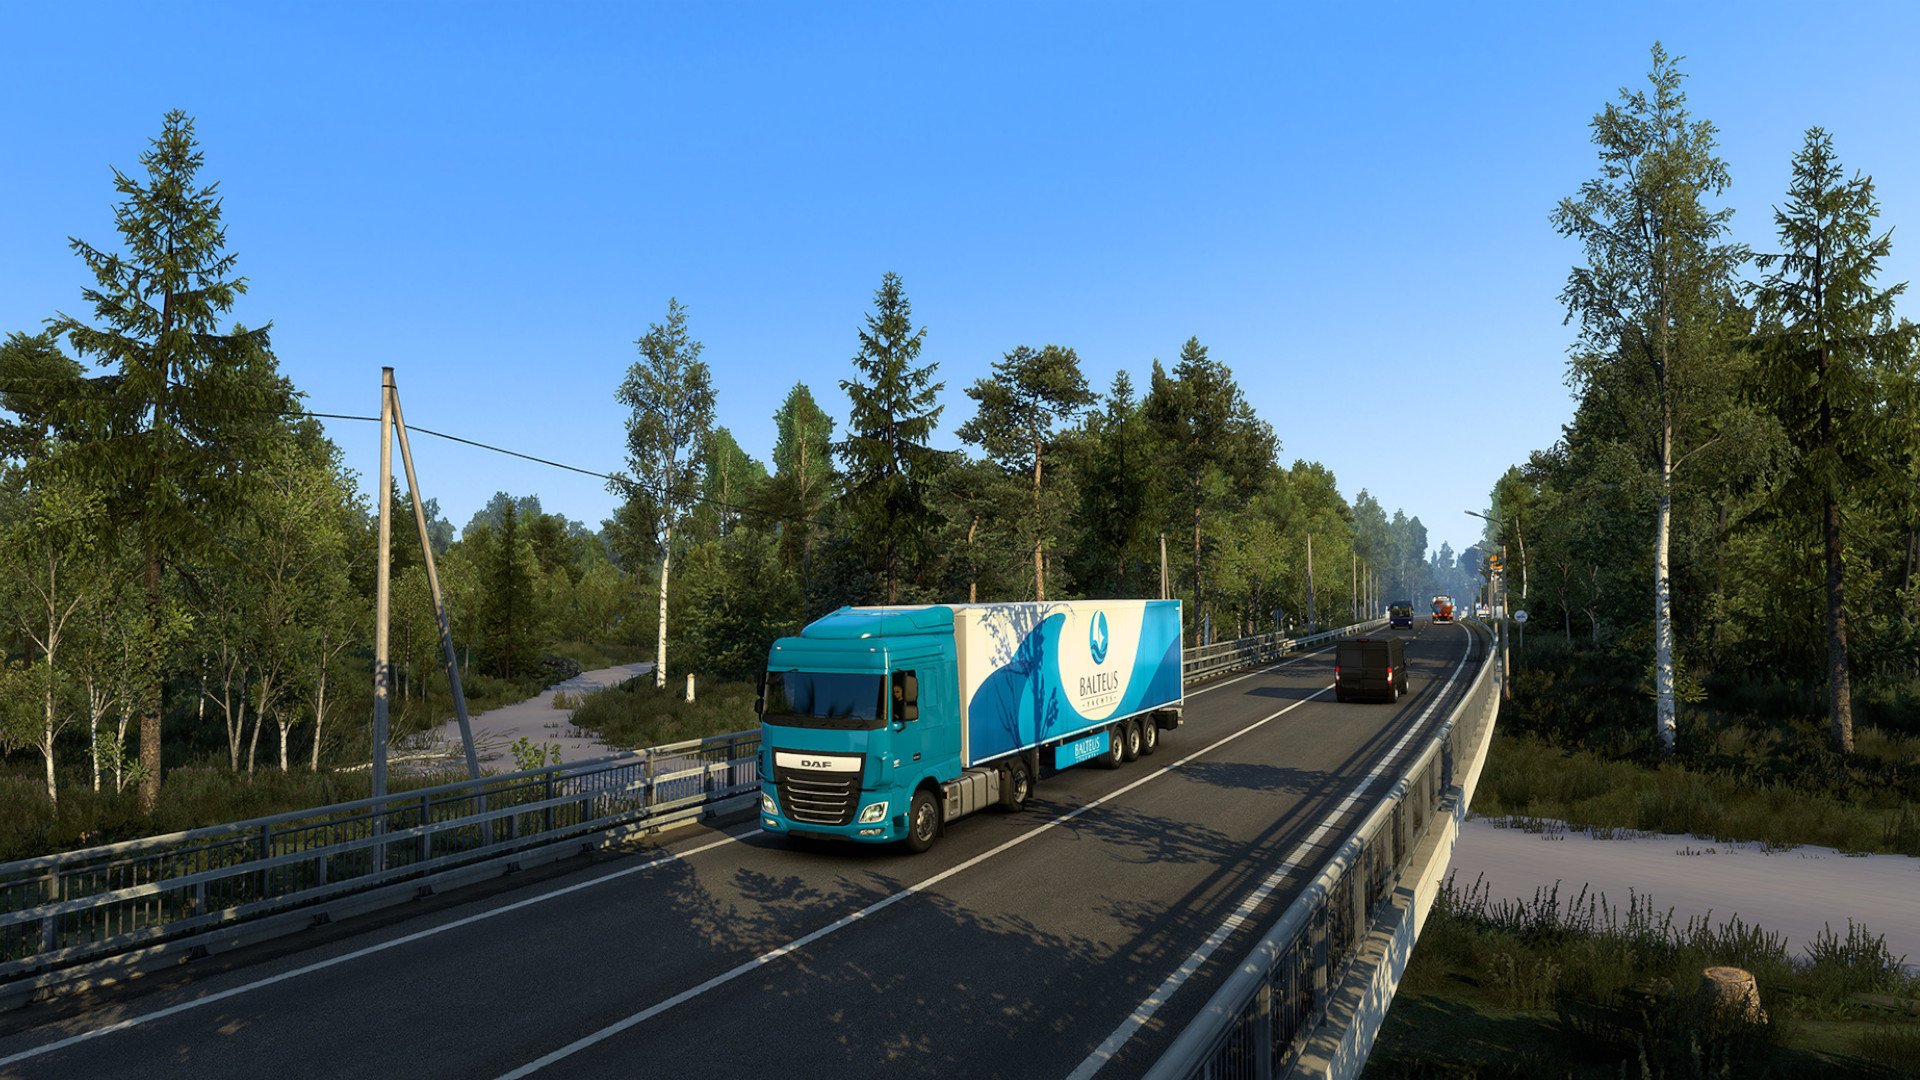 Euro Truck Simulator 2 devs reveal Heart of Russia DLC, coming after Iberia